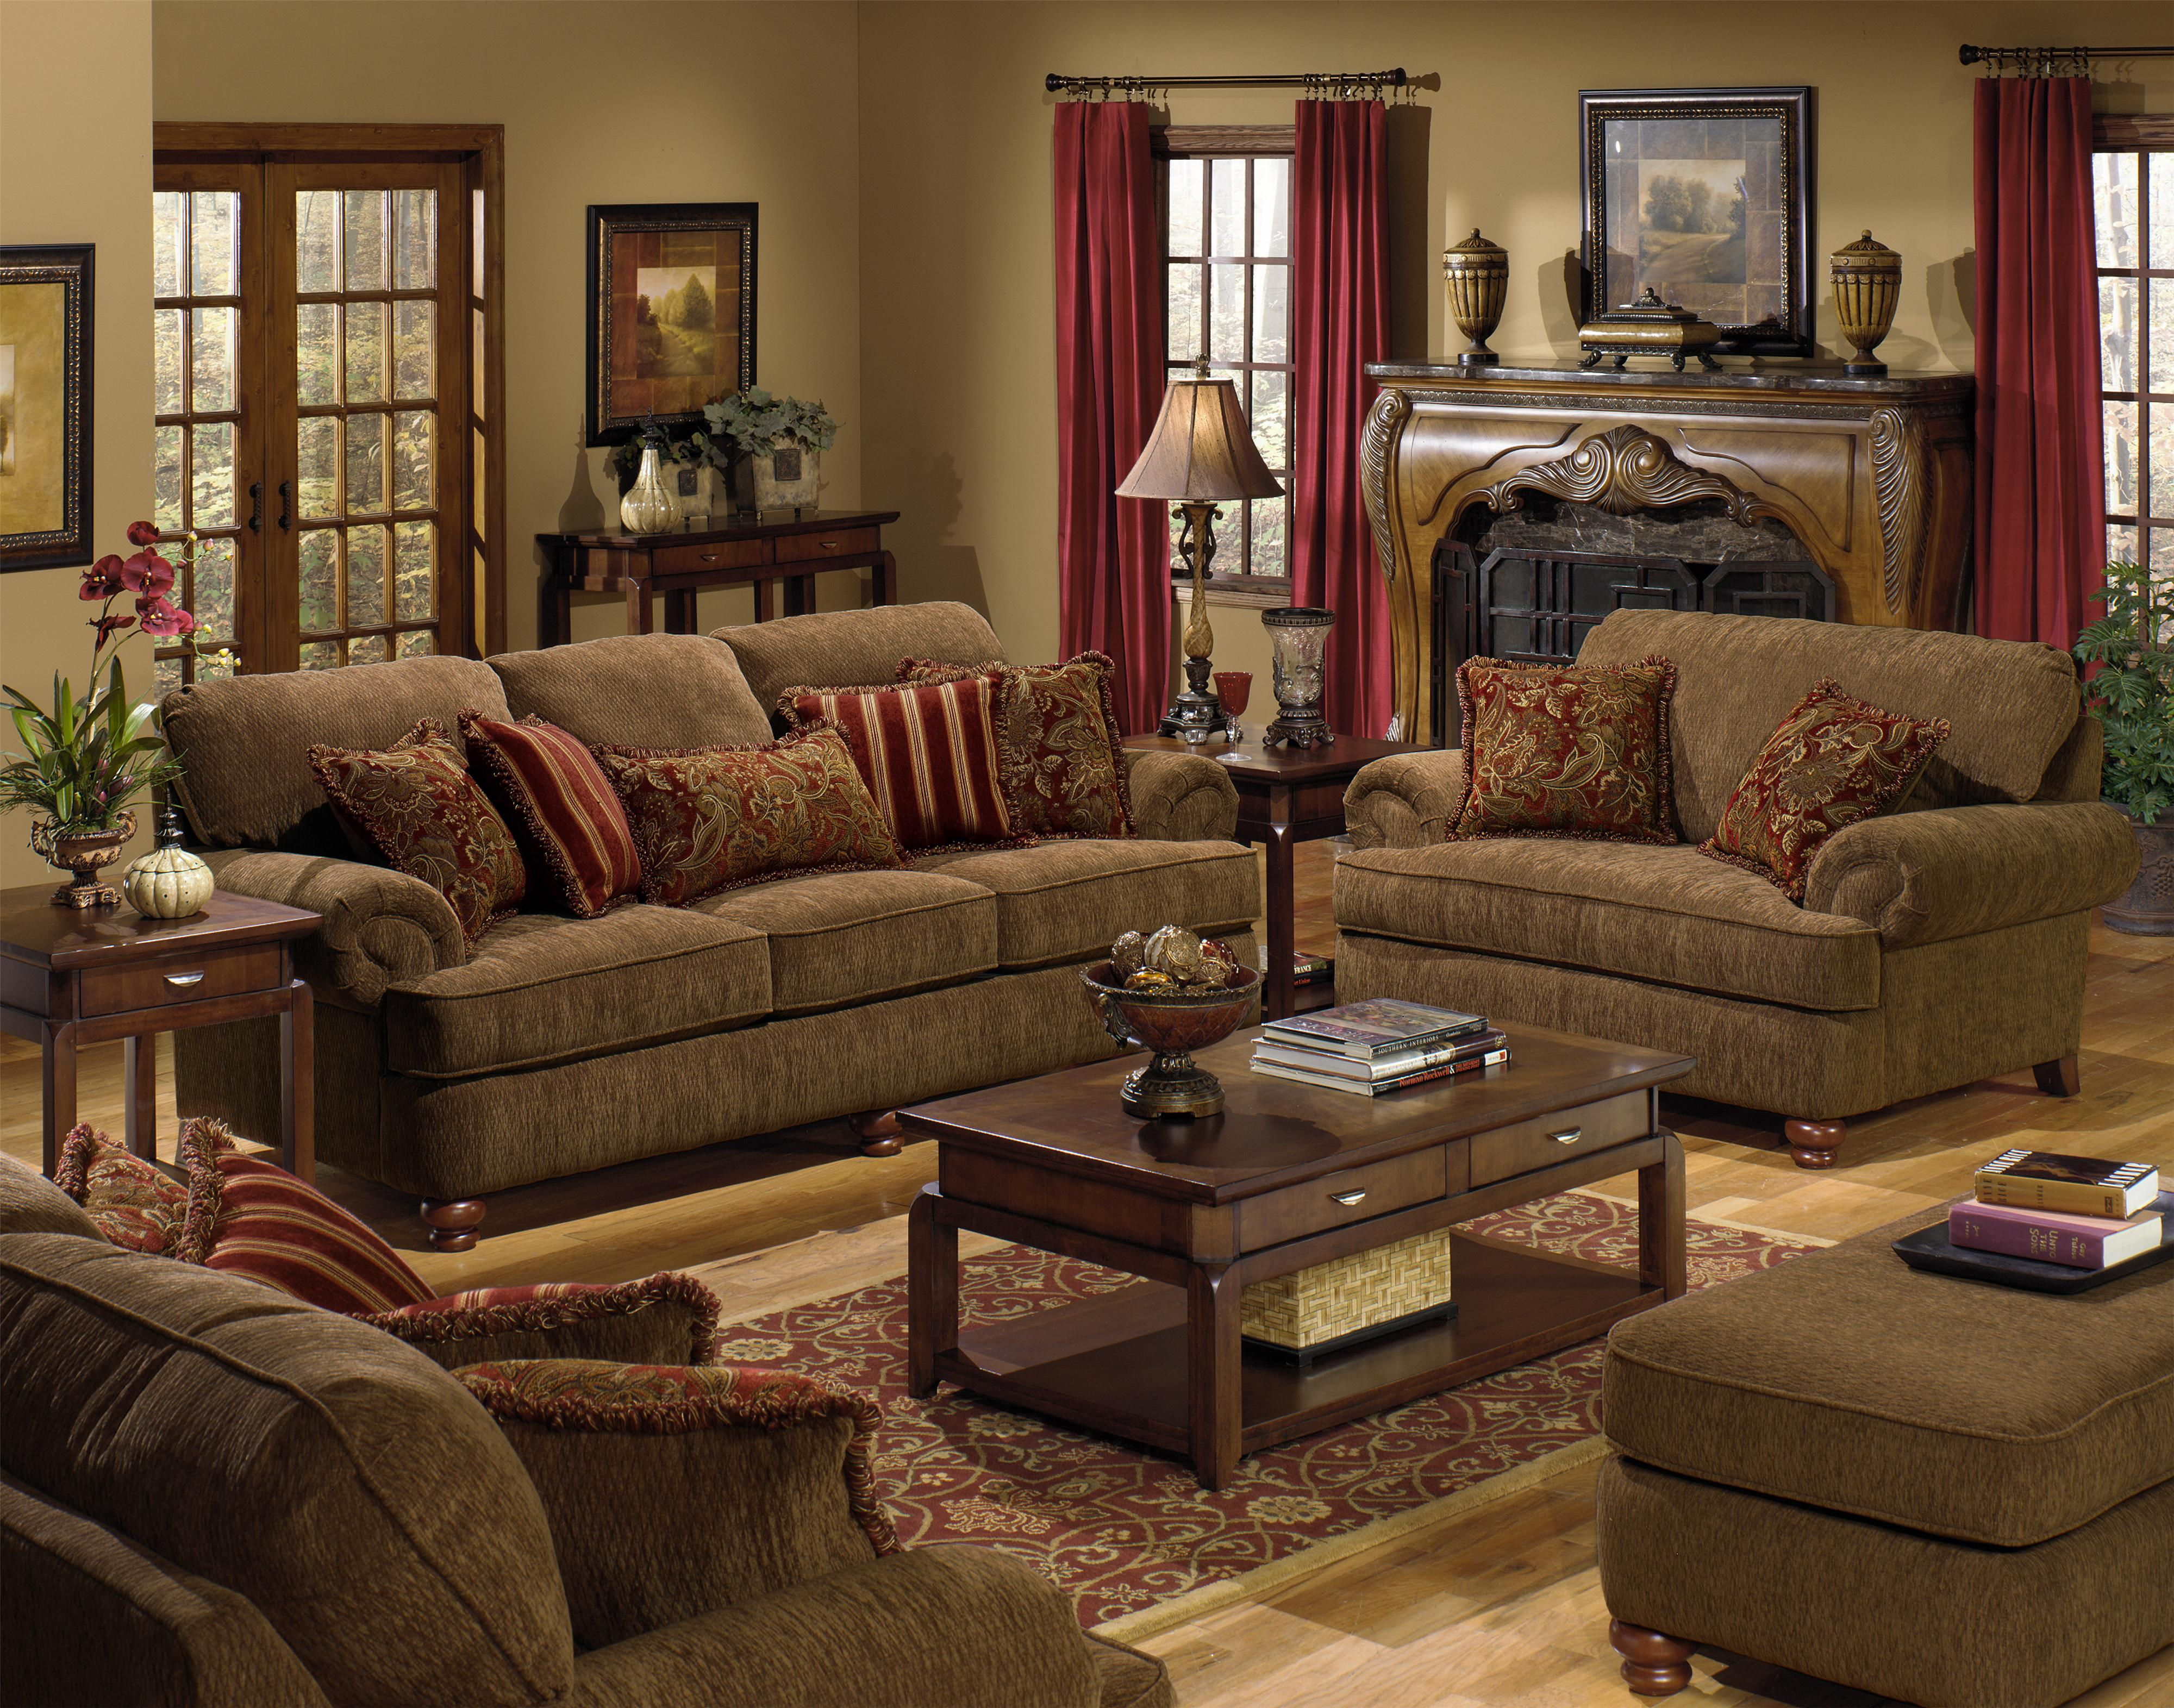 living room chair and a half. Chair and a Half with Rolled Arms 2 Decorative Pillows by